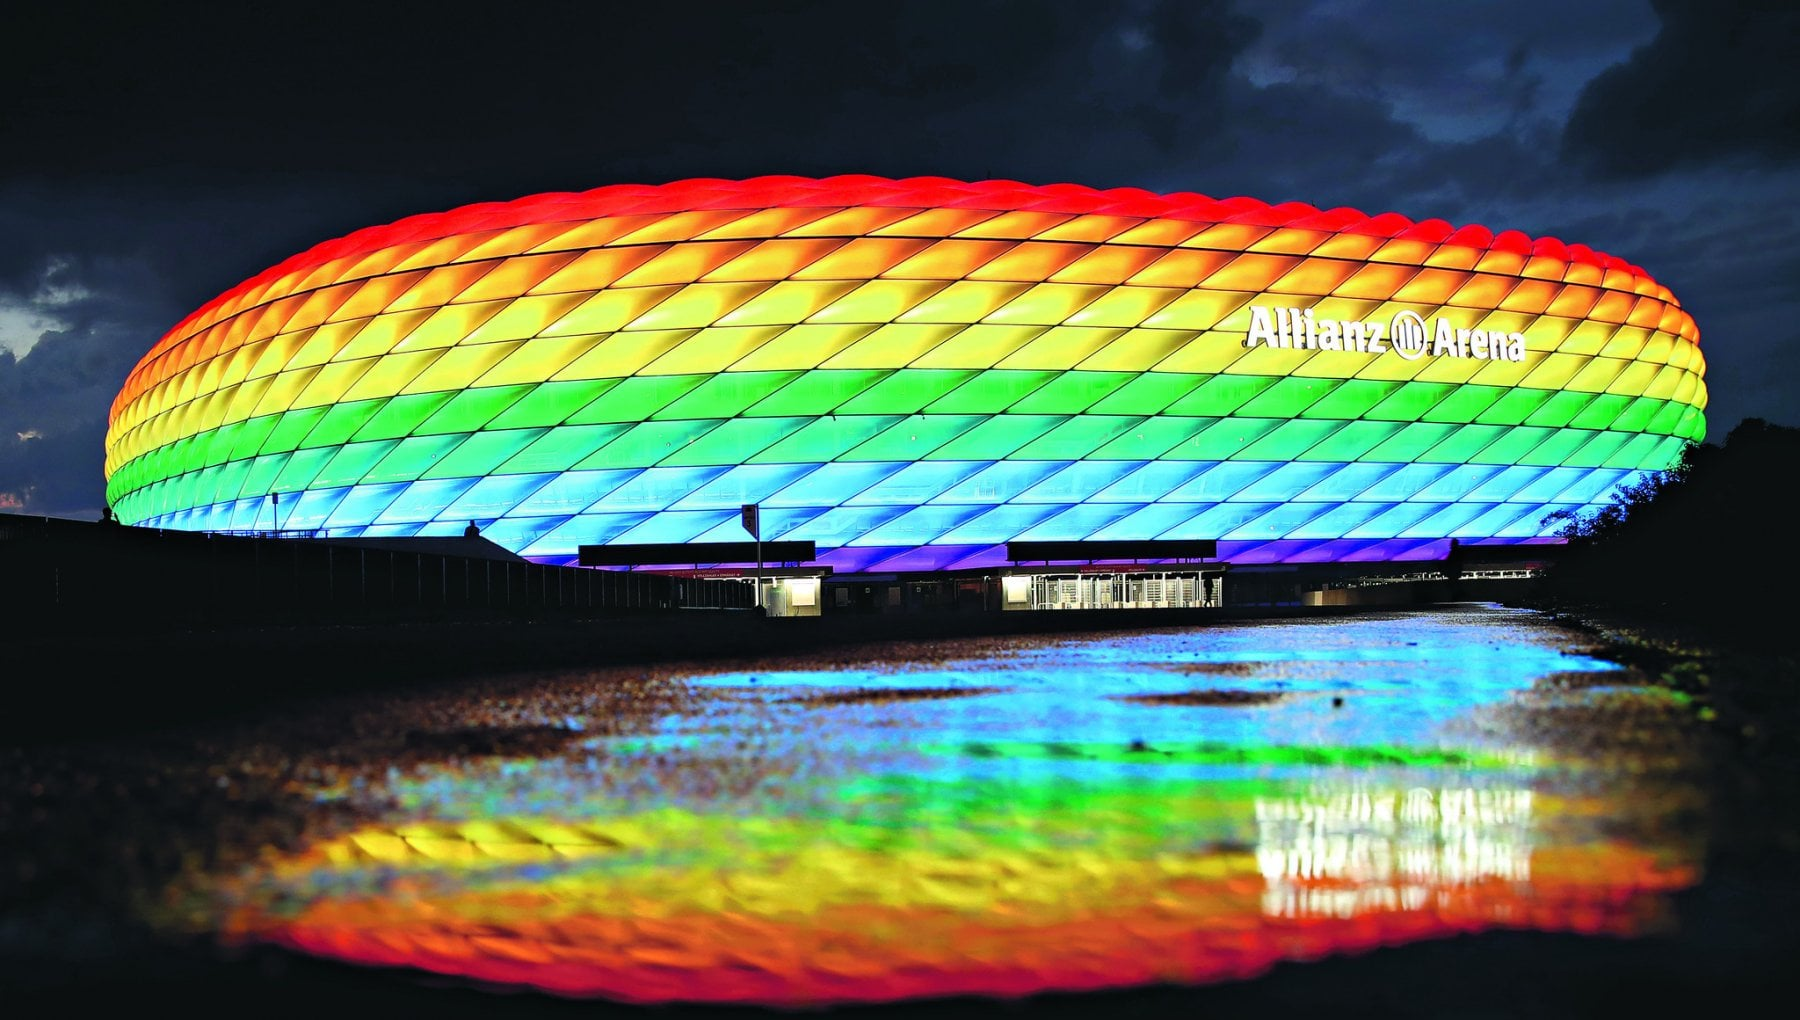 Europeans, UEFA puts a rainbow in its logo. Orban does not go to Munich